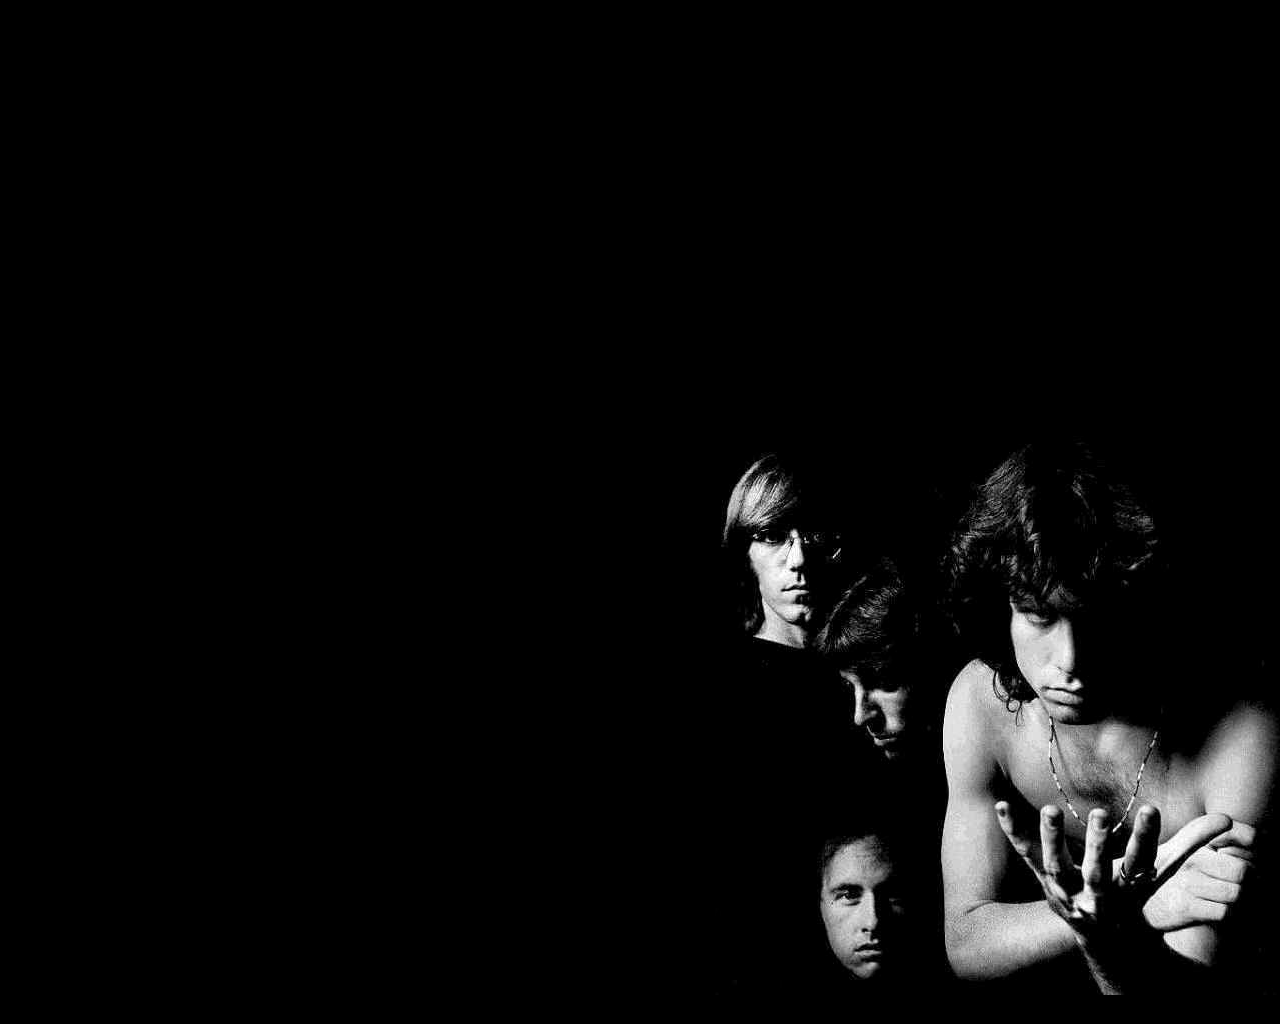 the doors images hd - photo #11